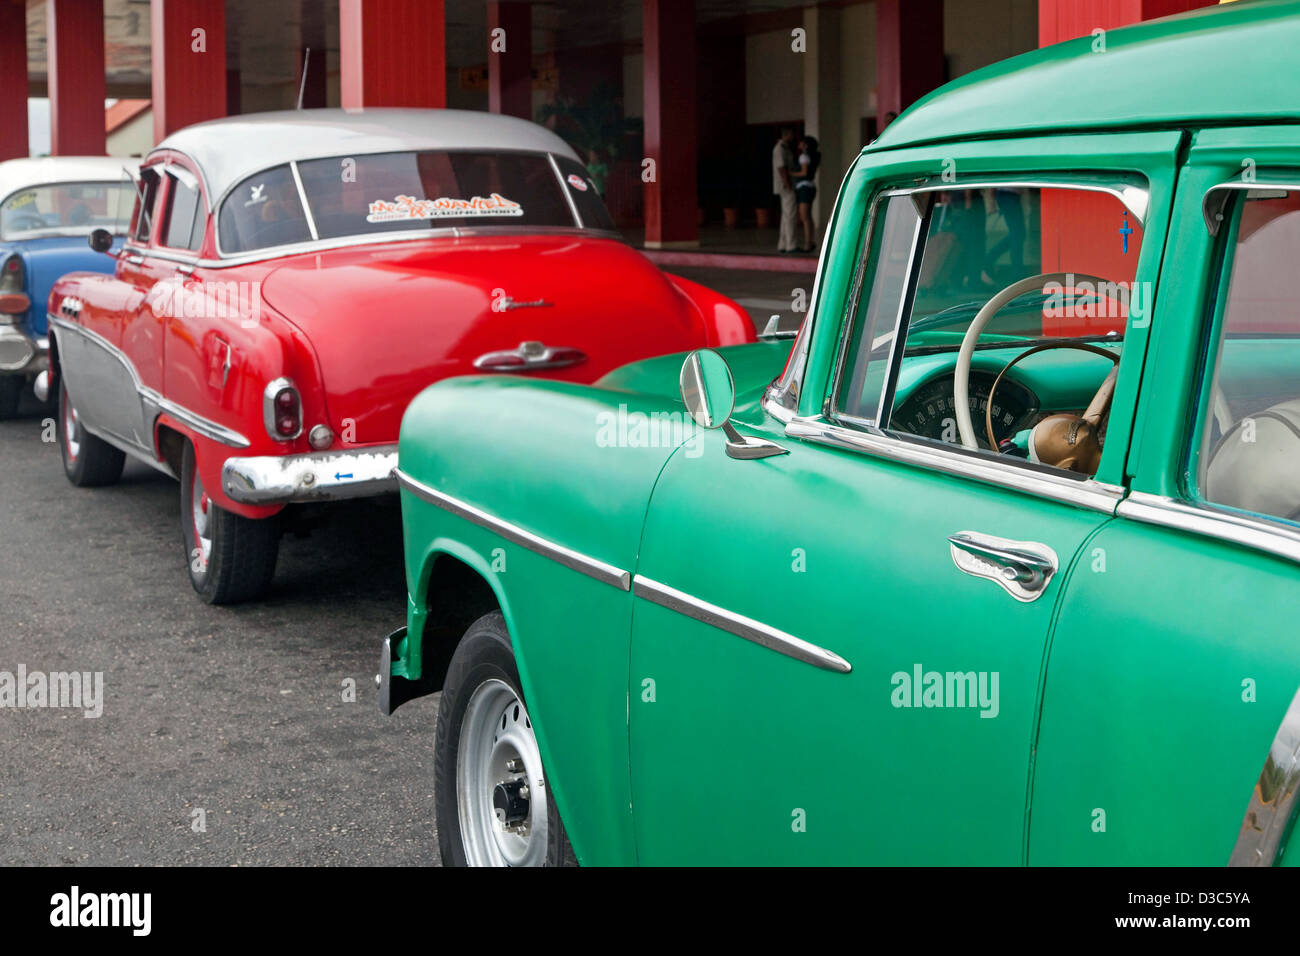 Old 1950s vintage American cars / Yank tank used as taxis waiting ...